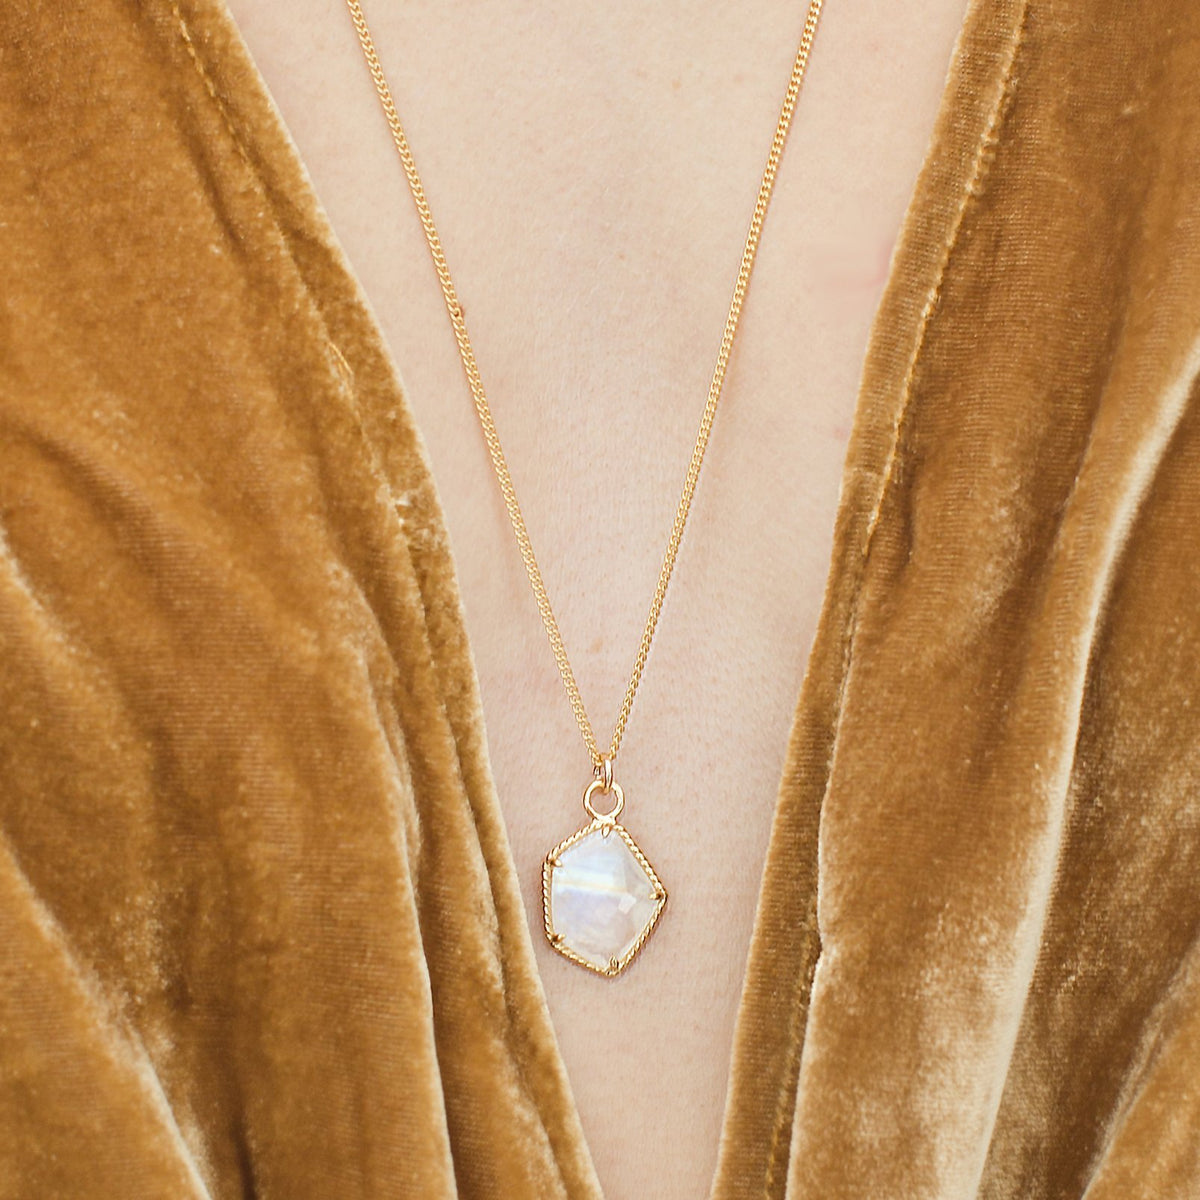 HONOUR ICON - RAINBOW MOONSTONE & GOLD - SO PRETTY CARA COTTER